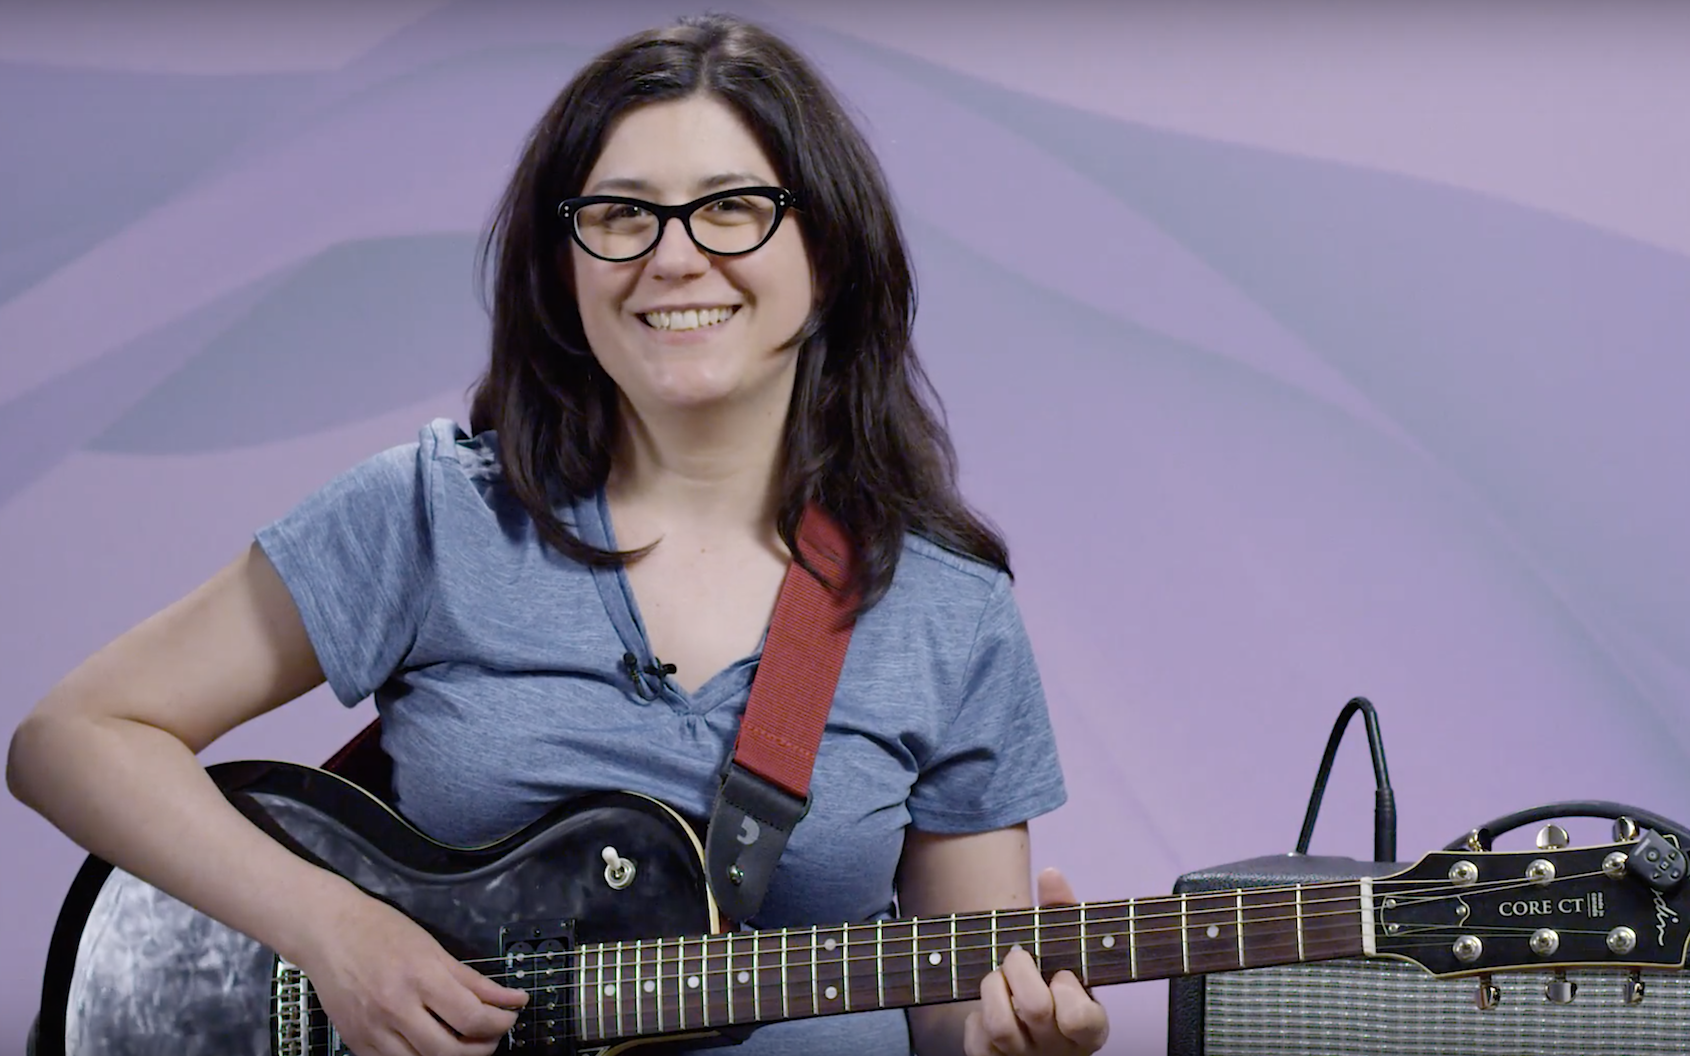 VIDEO TUTORIAL: Learn Intermediate Guitar Fundamentals with Amanda Monaco